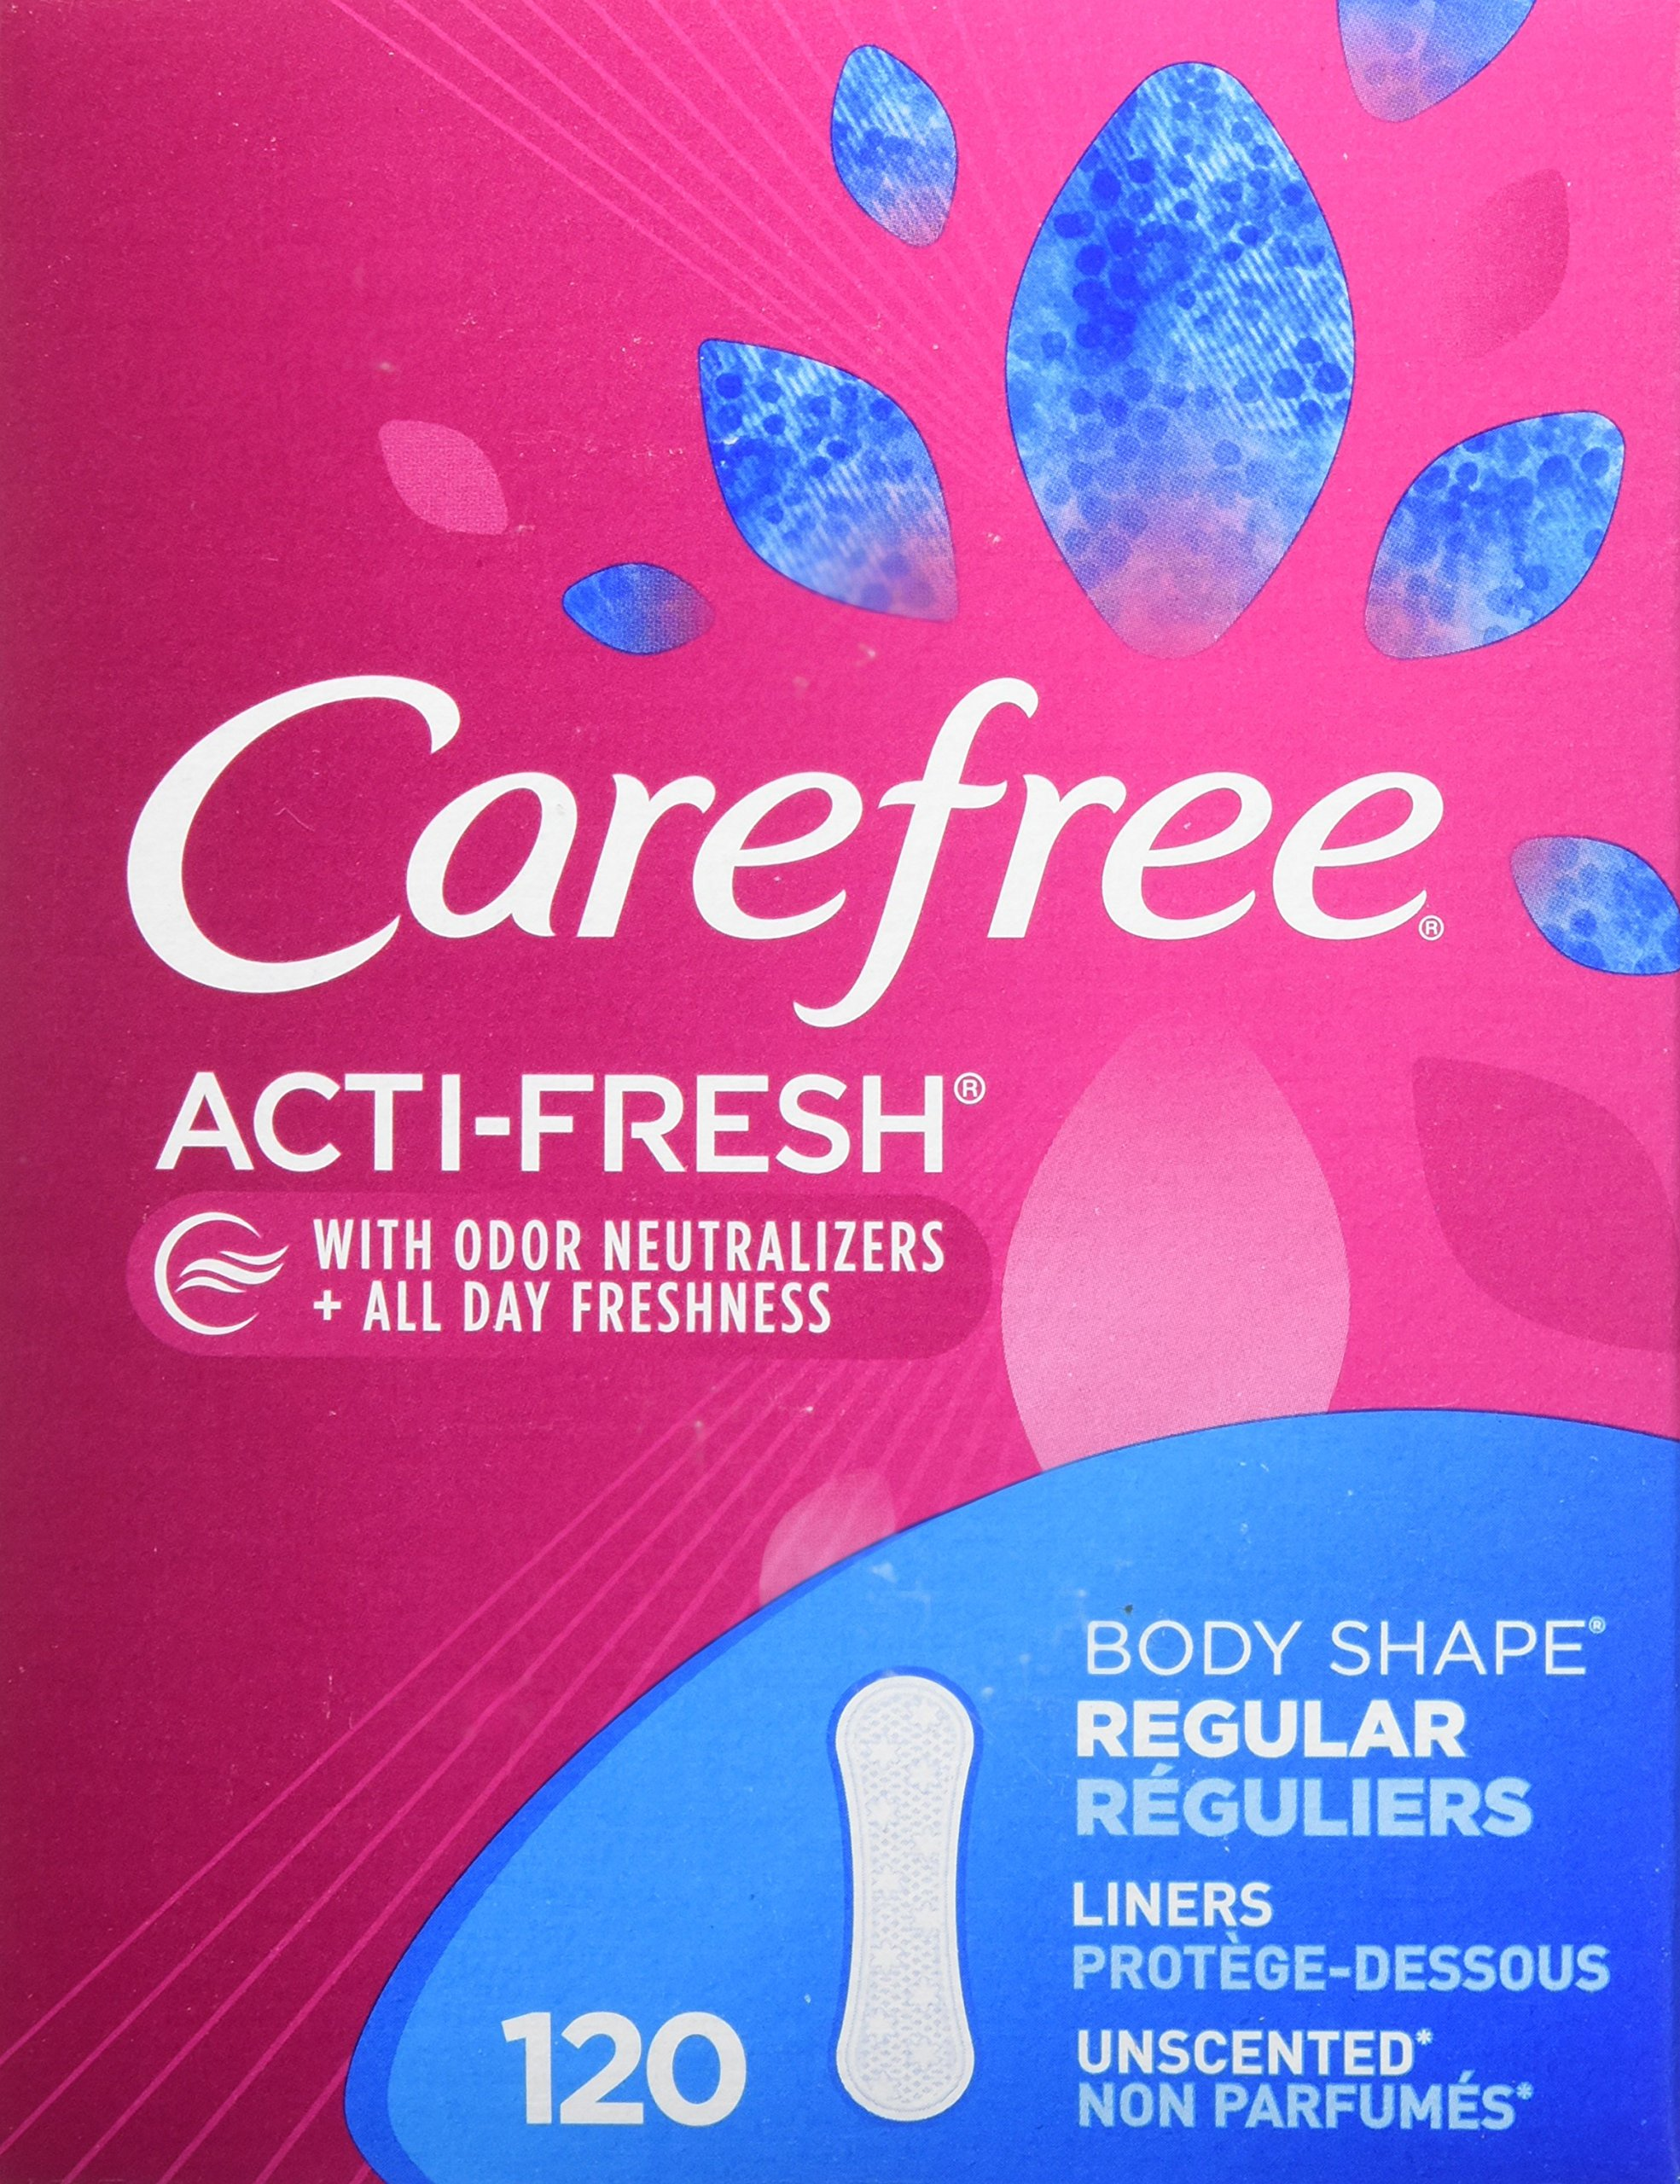 Carefree Acti-Fresh Panty Liners, Regular, Unscented - 120 Count product image